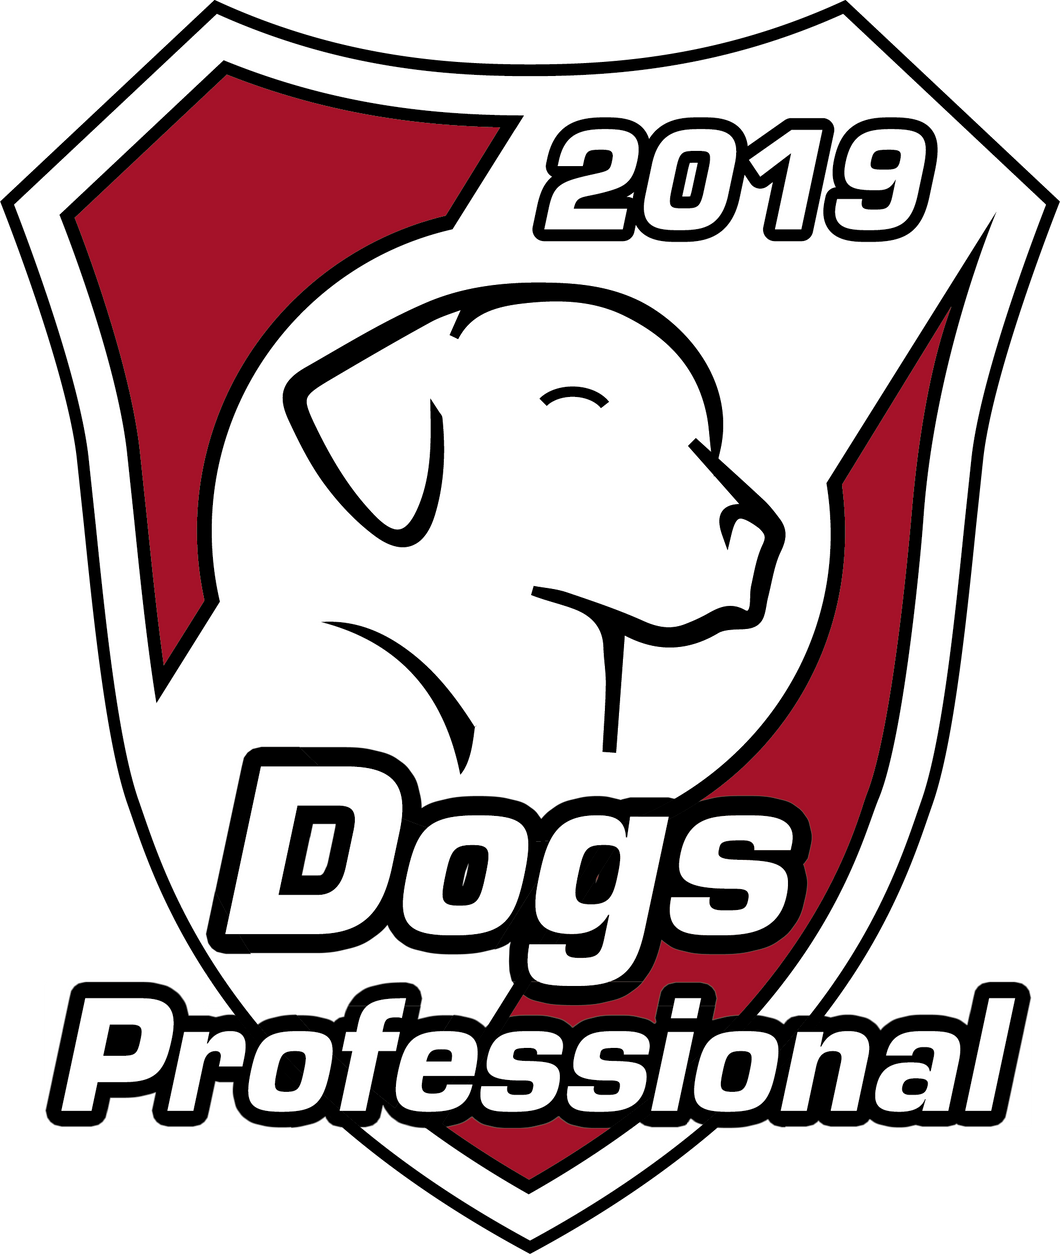 Dogs-Professional 2019